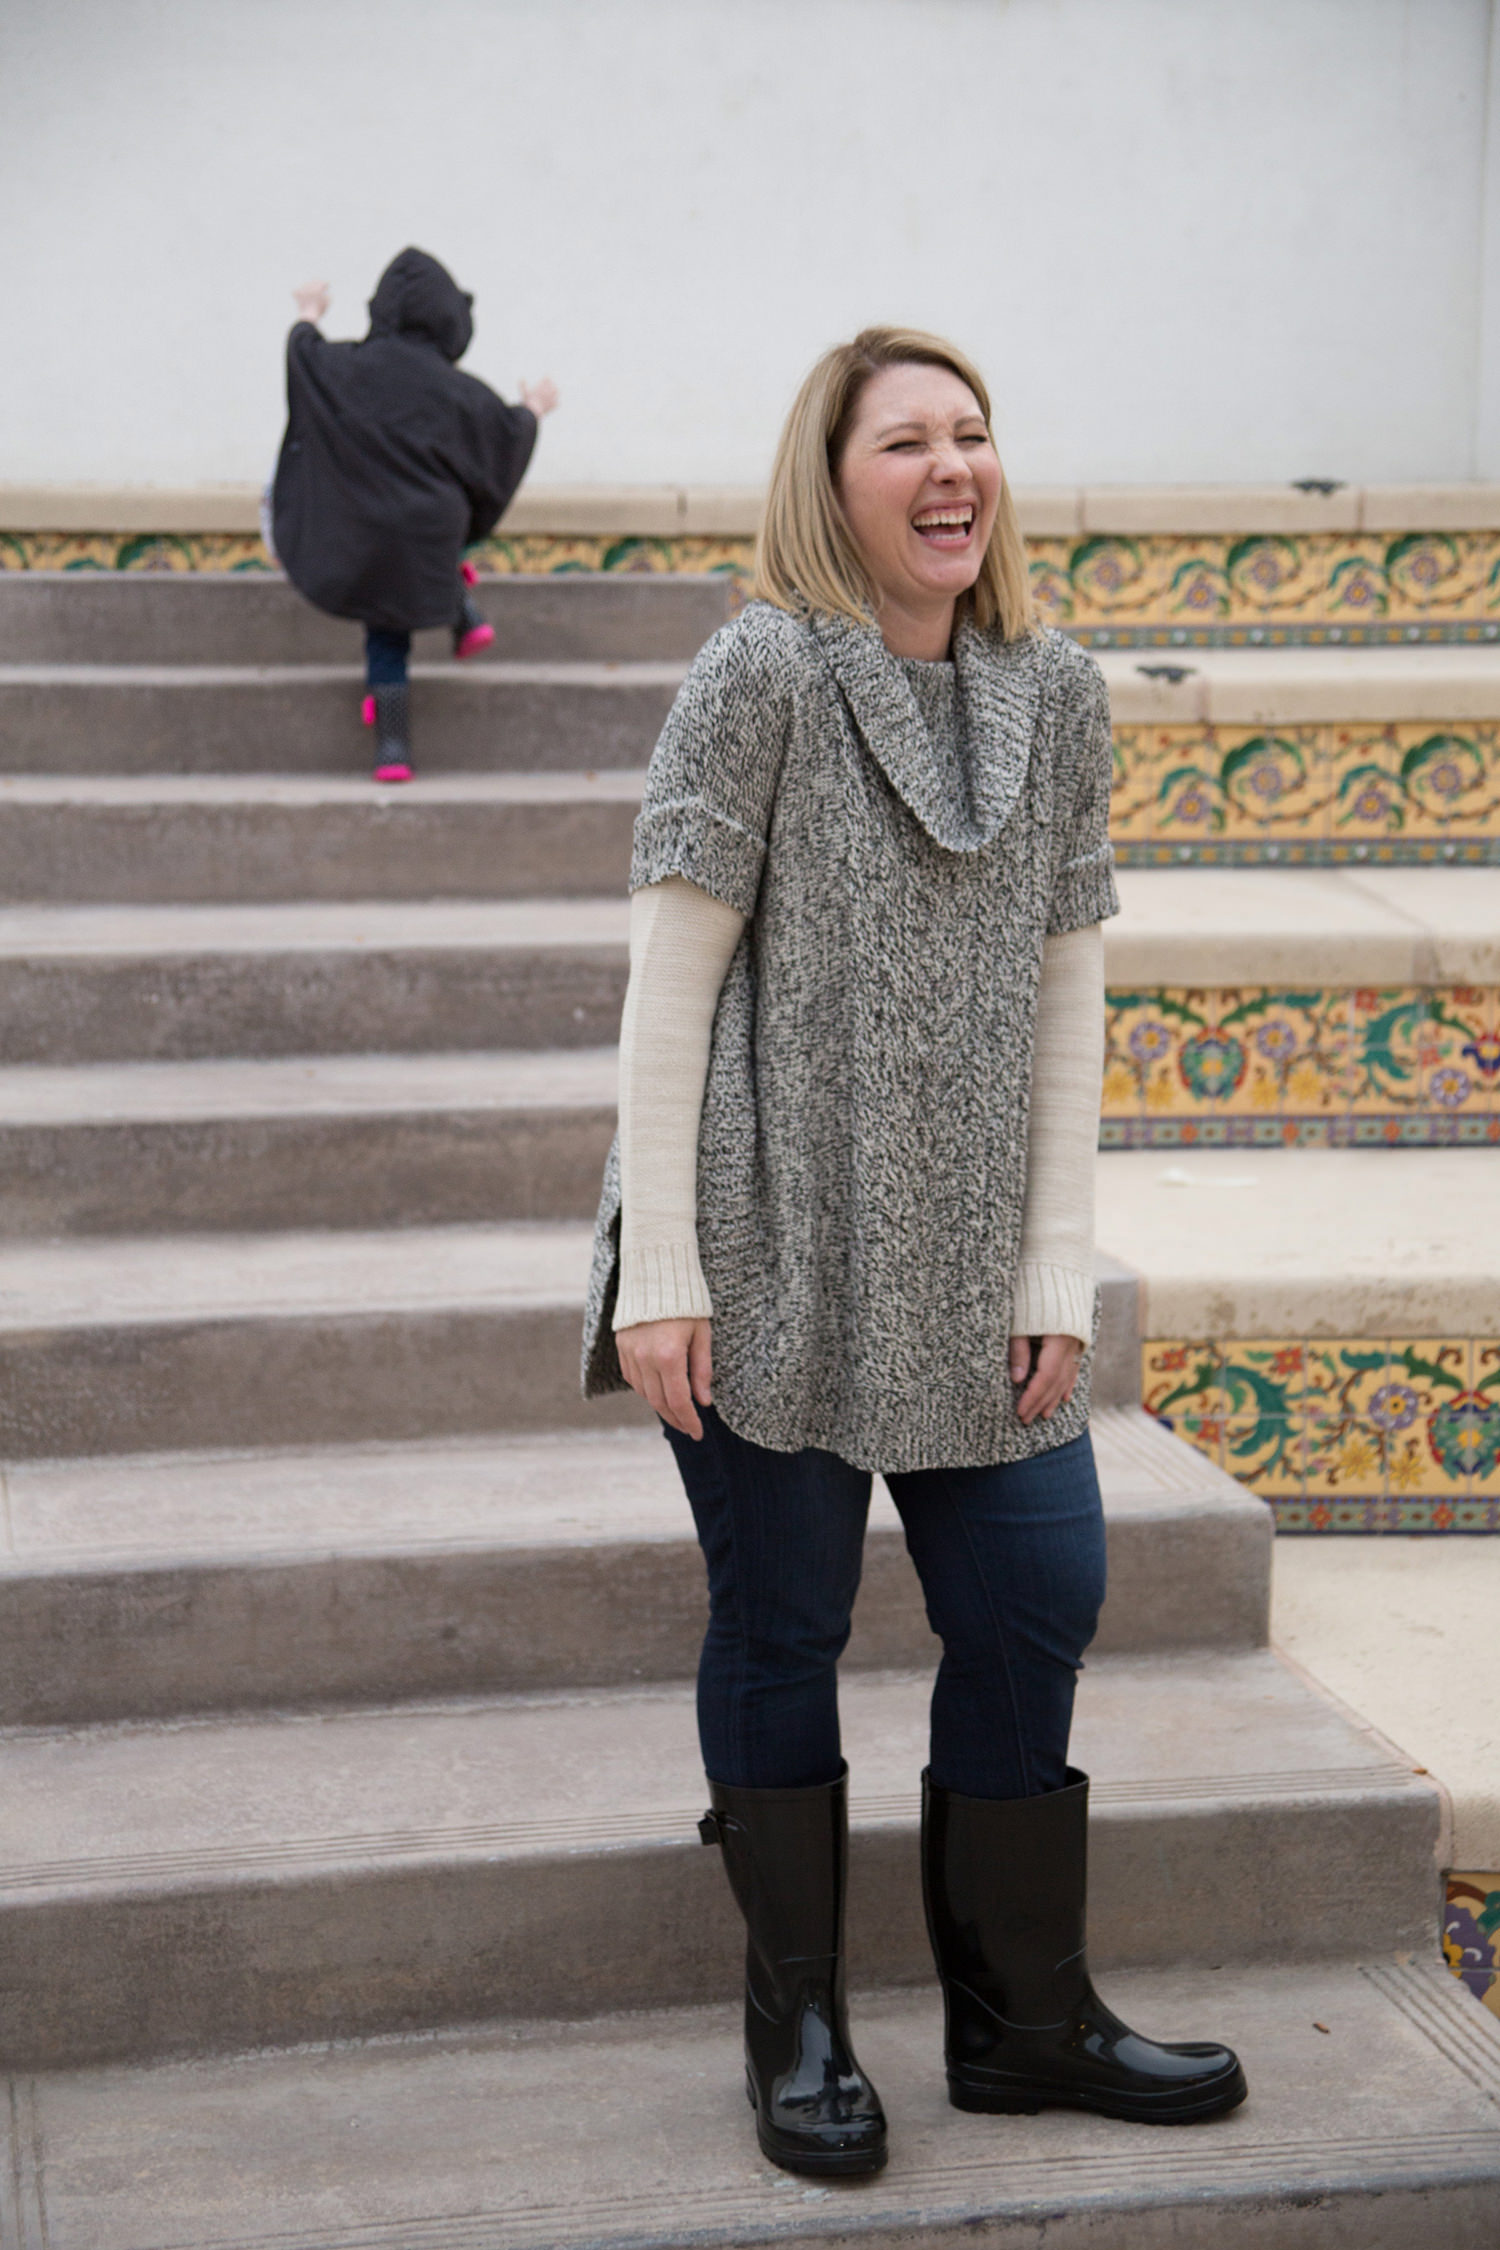 Looking for a great grey sweater? Lifestyle blogger Lipgloss & Crayons shares her favorite from Stitch Fix and why she loves this clothing subscription box!